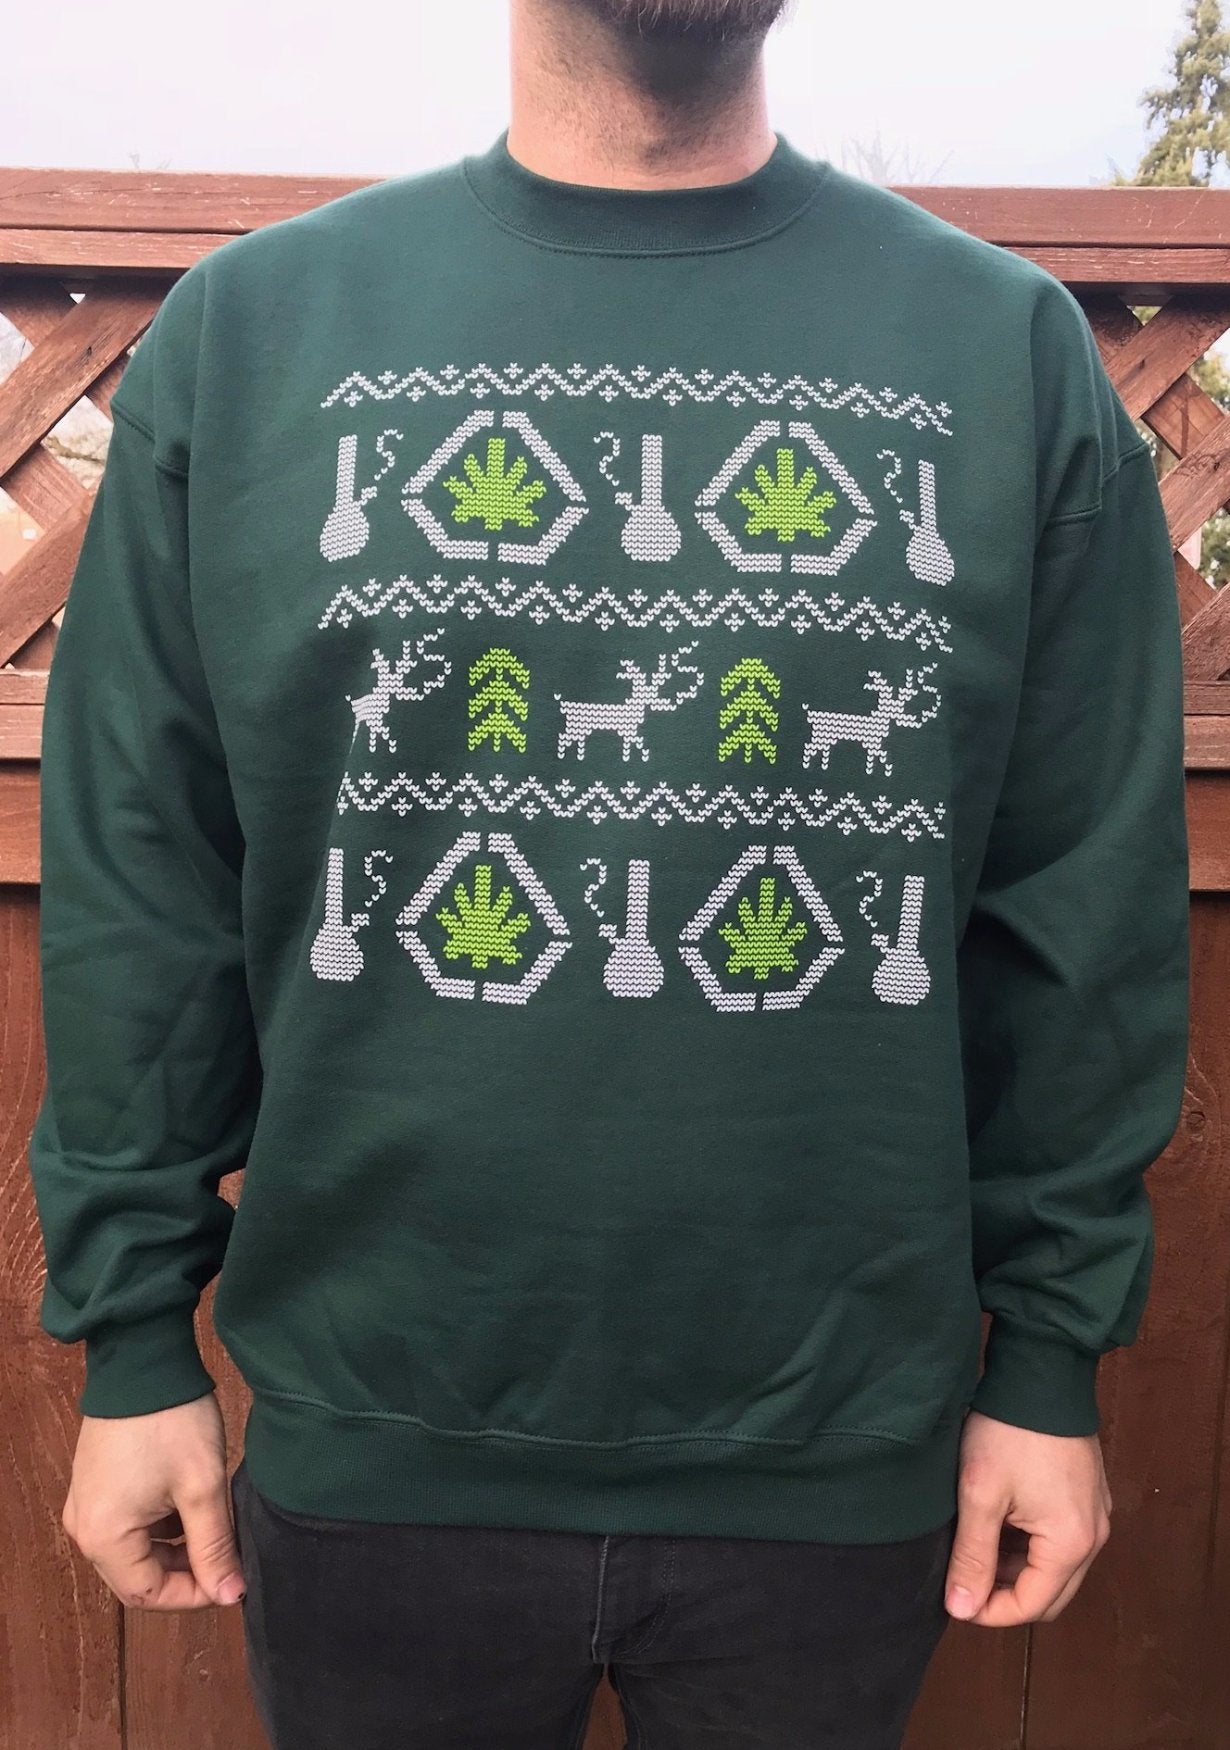 Smoking Deer Crew Neck Sweatshirt